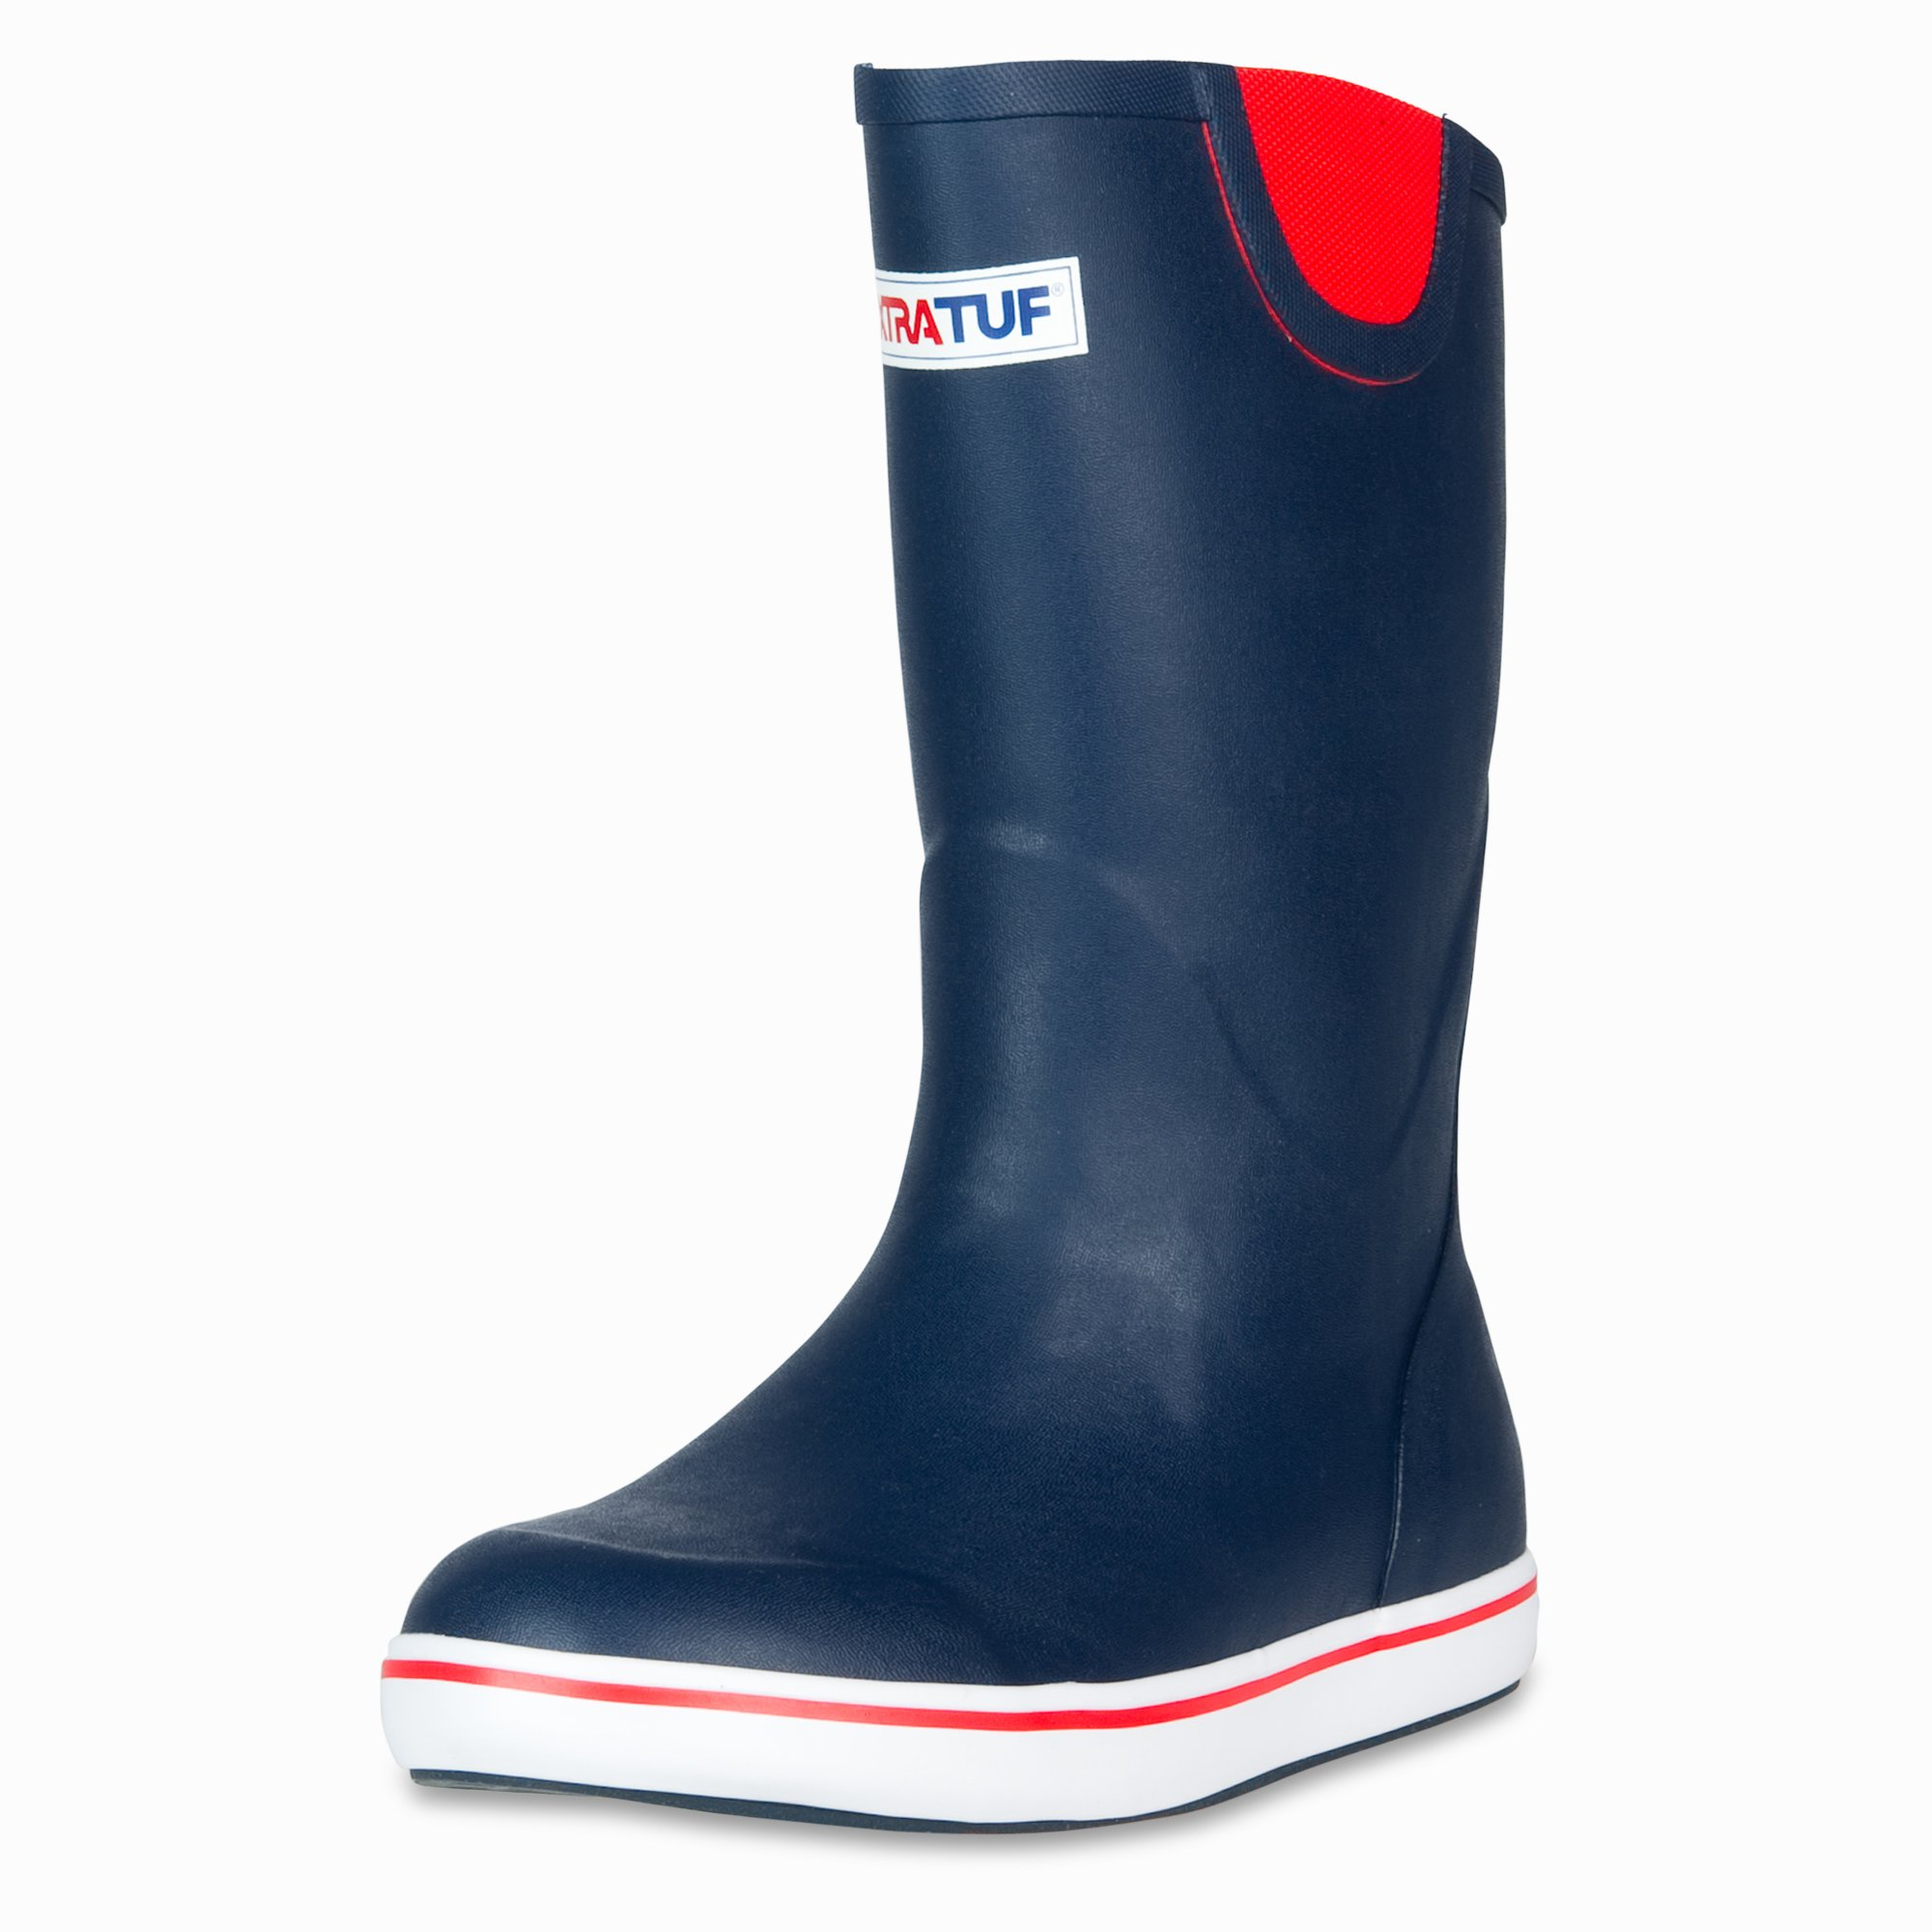 XTRATUF Performance Series 12'' Men's Full Rubber Deck Boots, Navy & Red (22732) by Xtratuf (Image #1)